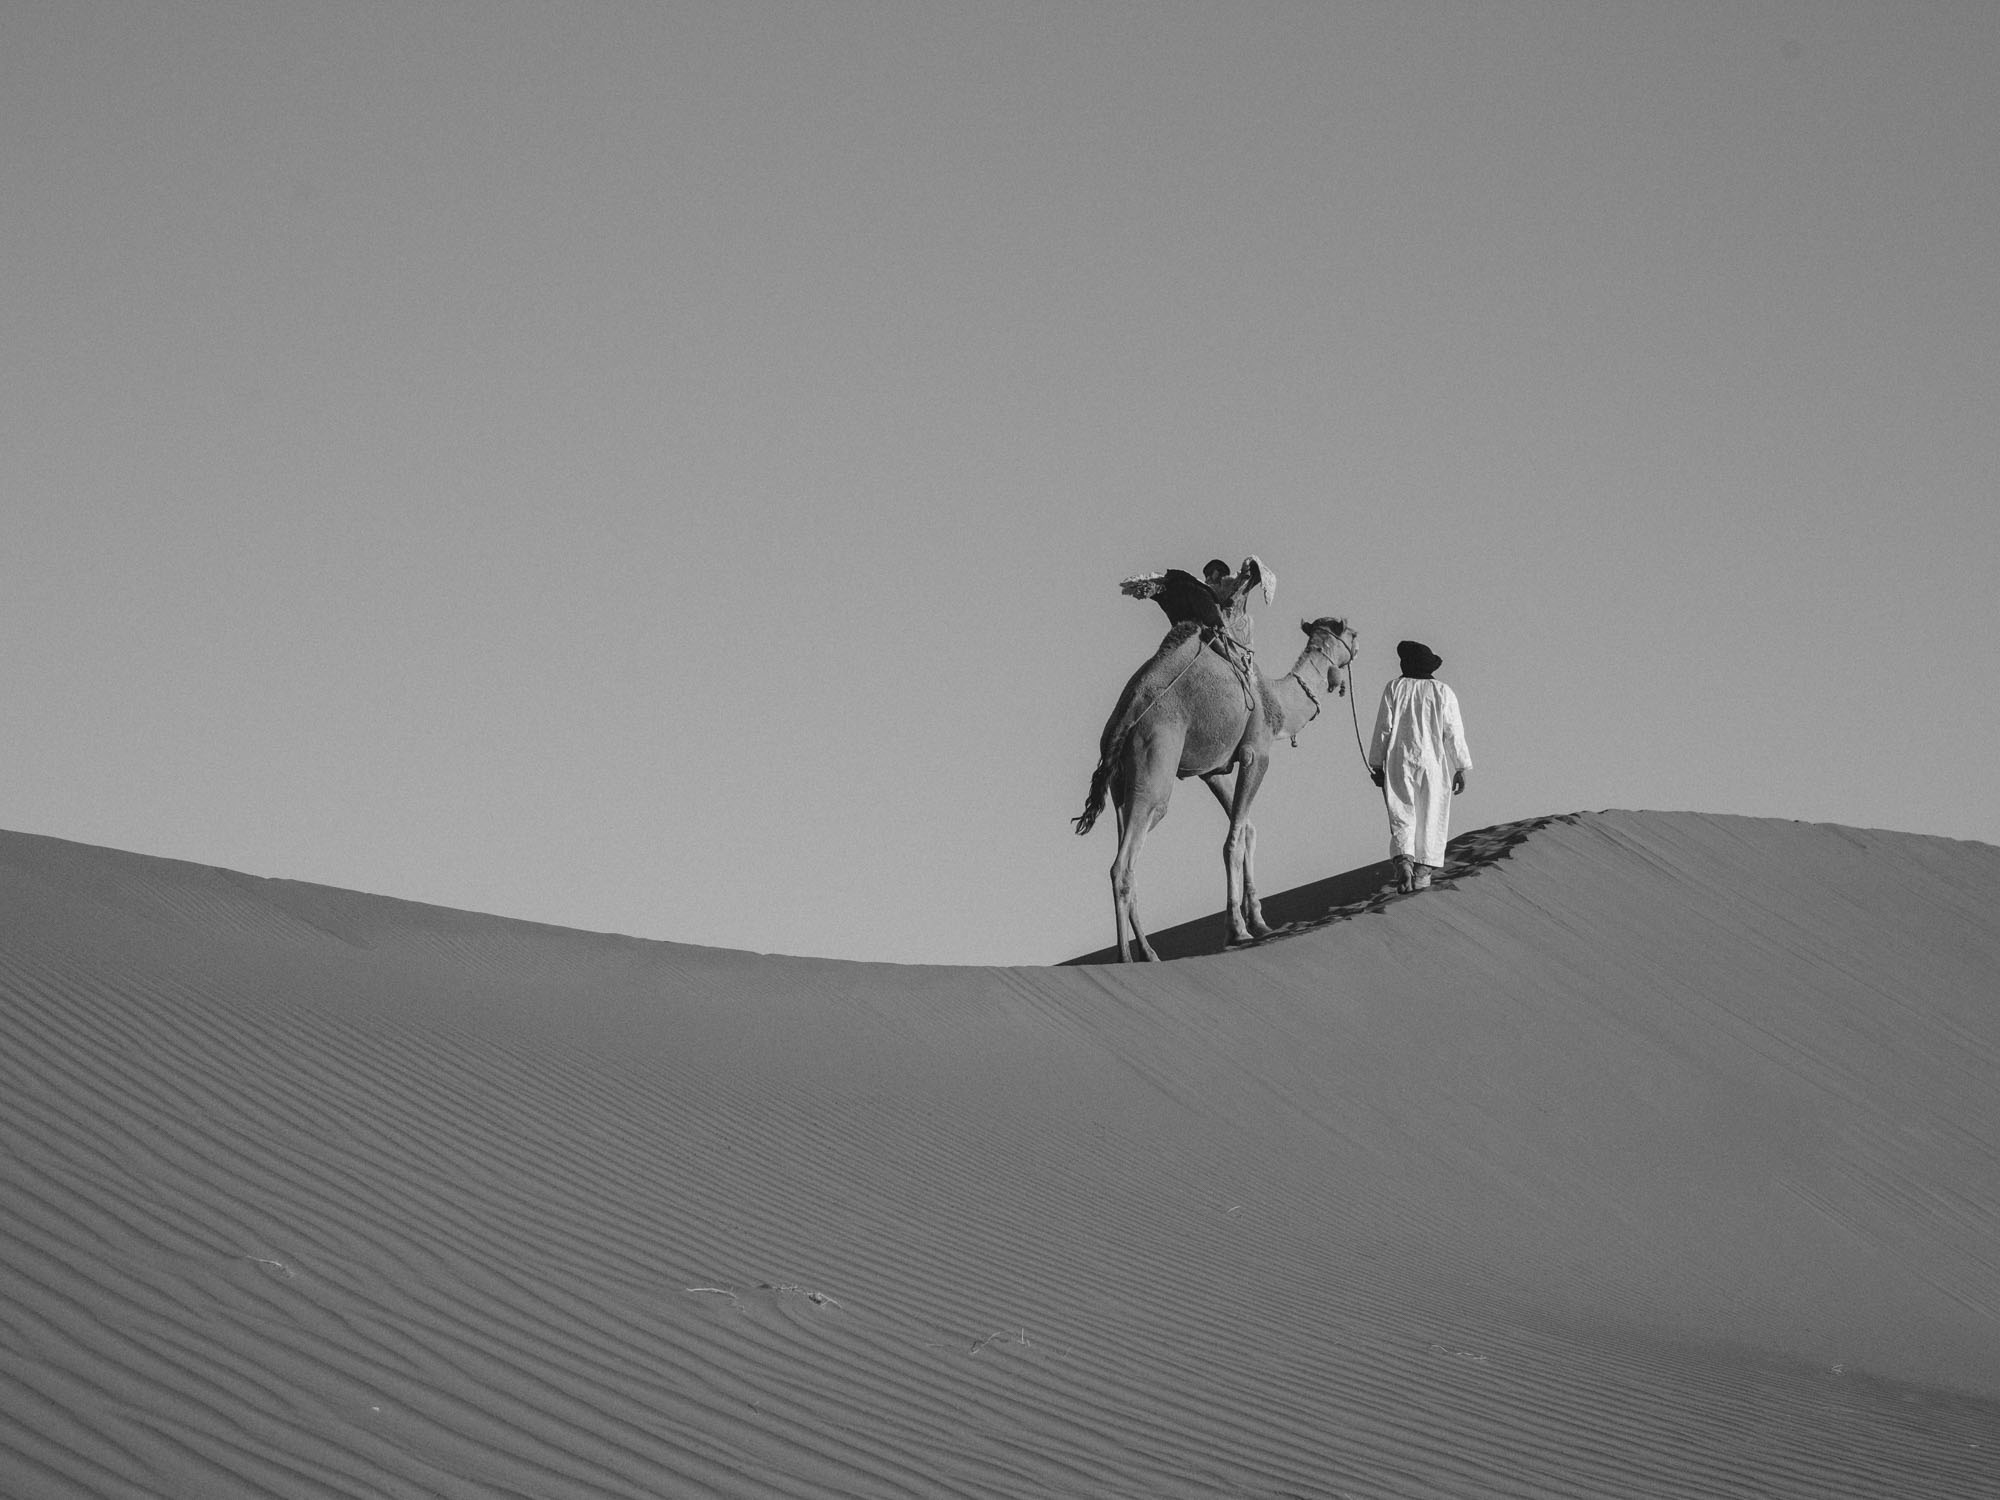 Camel With Berber Guide on Sand Dunes, Black and White Photo